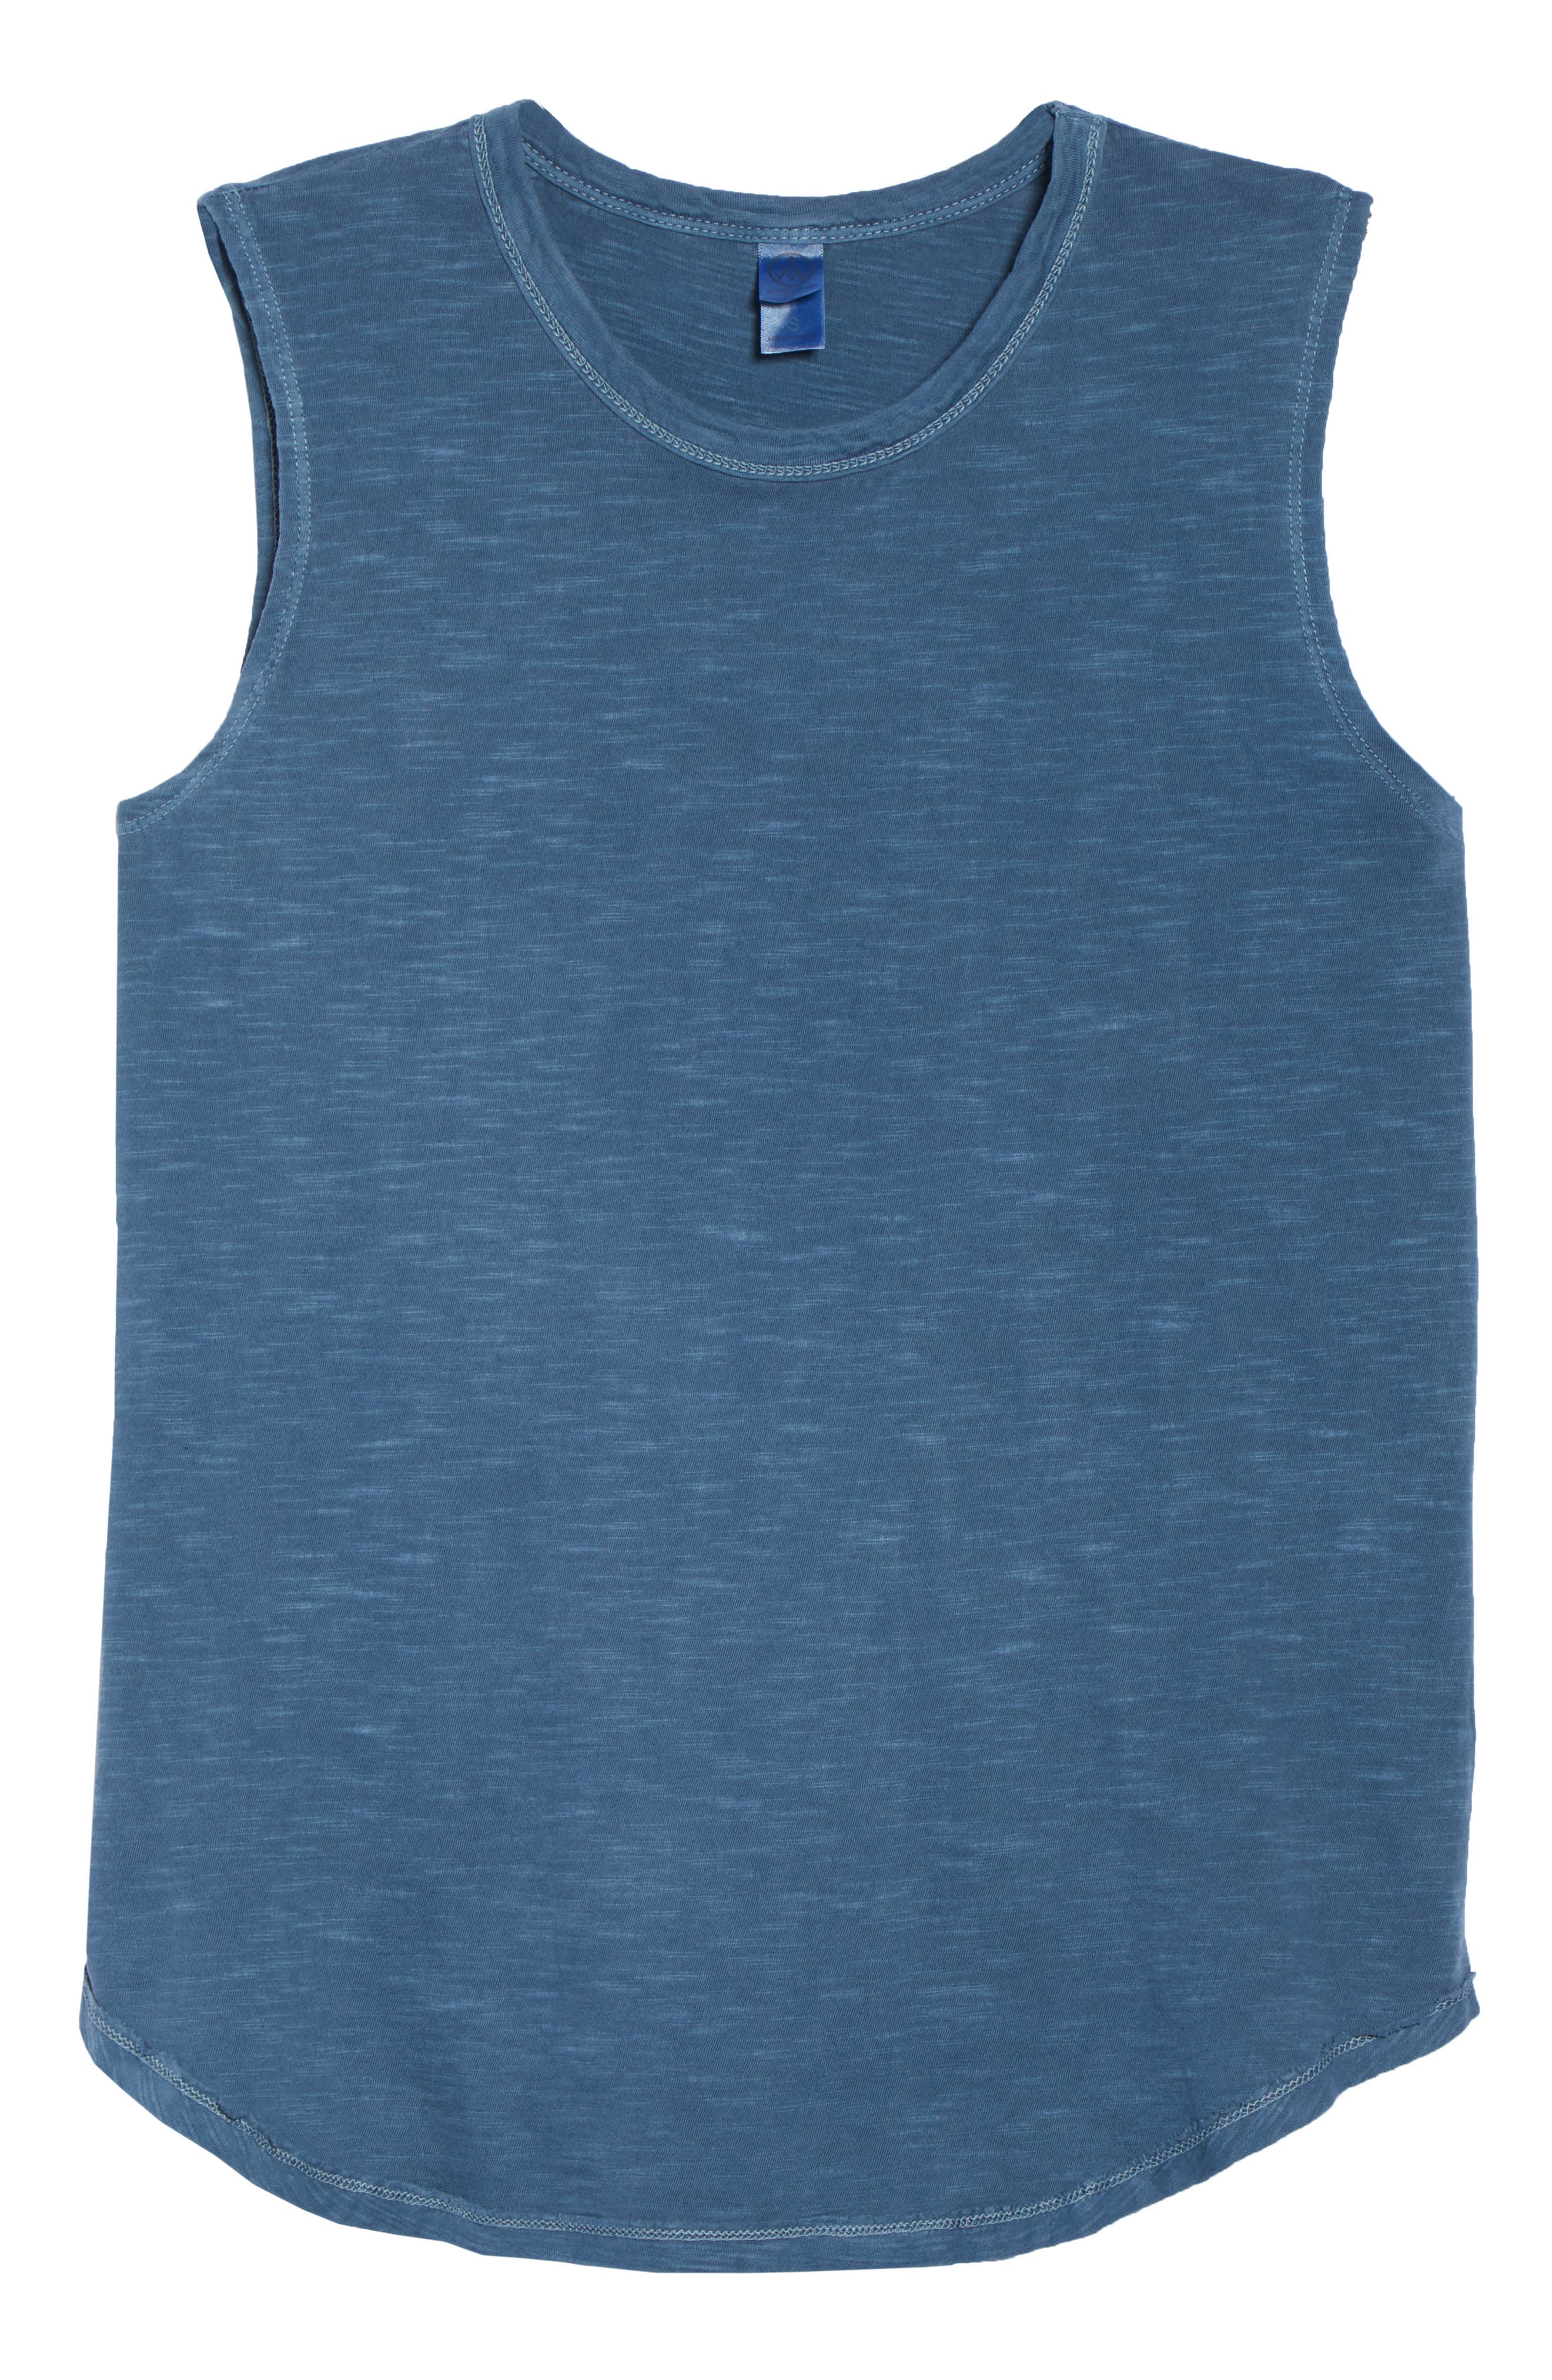 Inside Out Muscle Tee,                             Alternate thumbnail 6, color,                             MINERAL BLUE PIGMENT